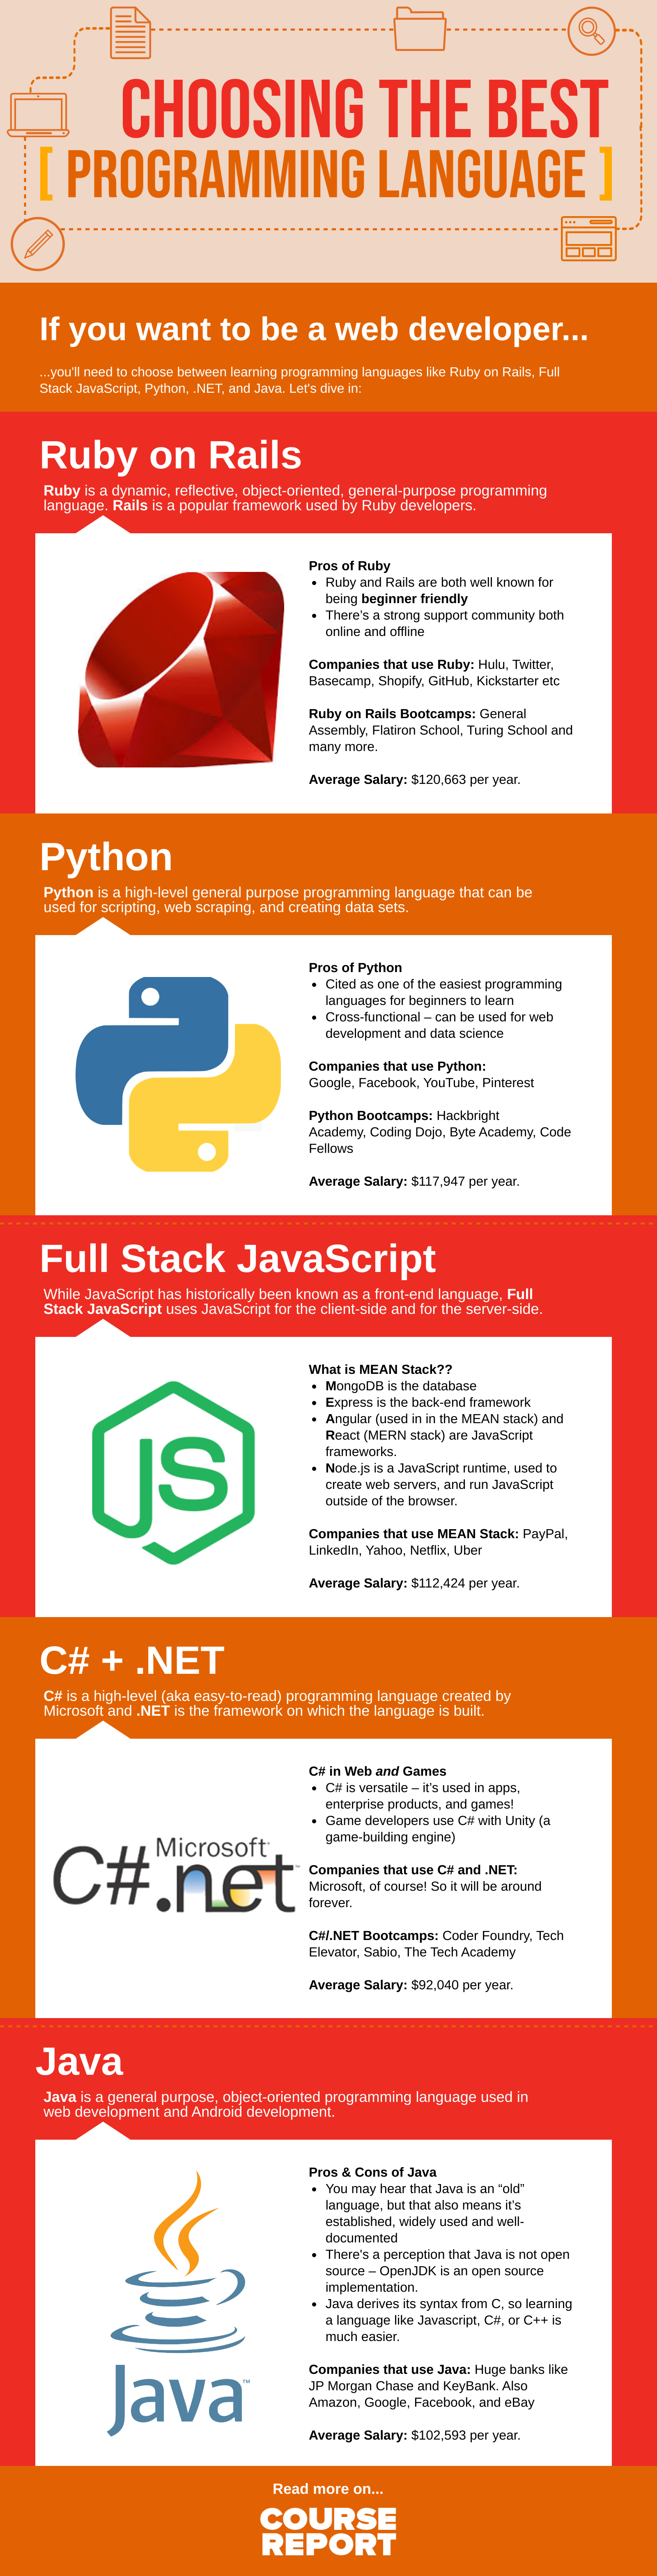 best-programming-language-to-learn-infographic